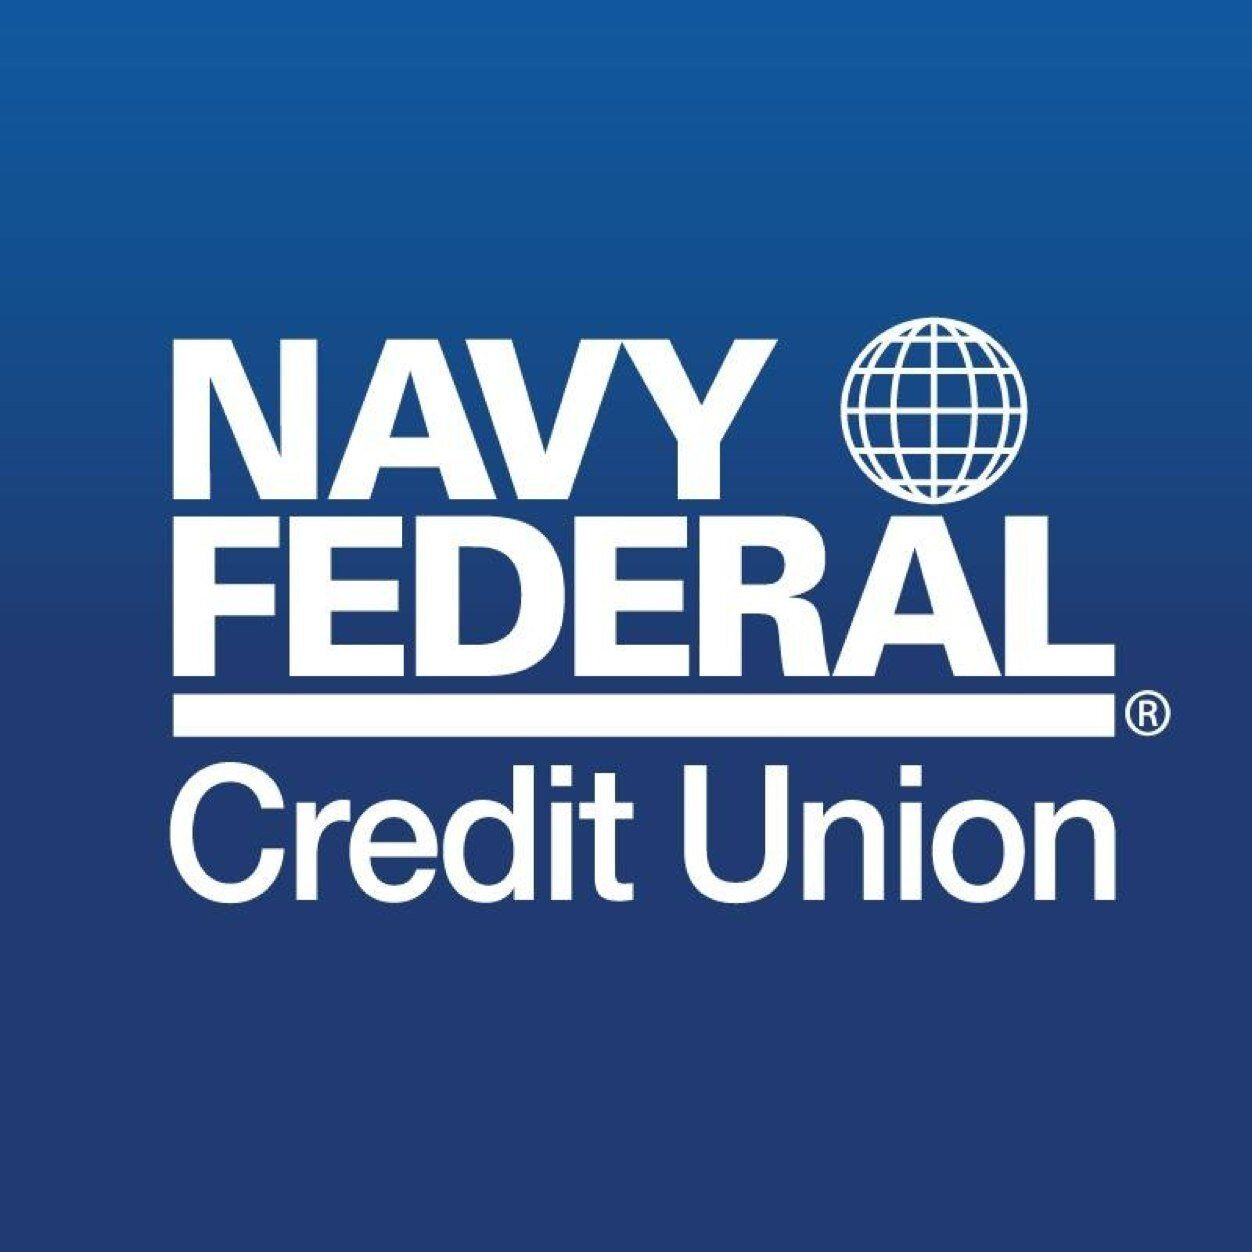 Banking Loans Mortgages Credit Cards With Images Navy